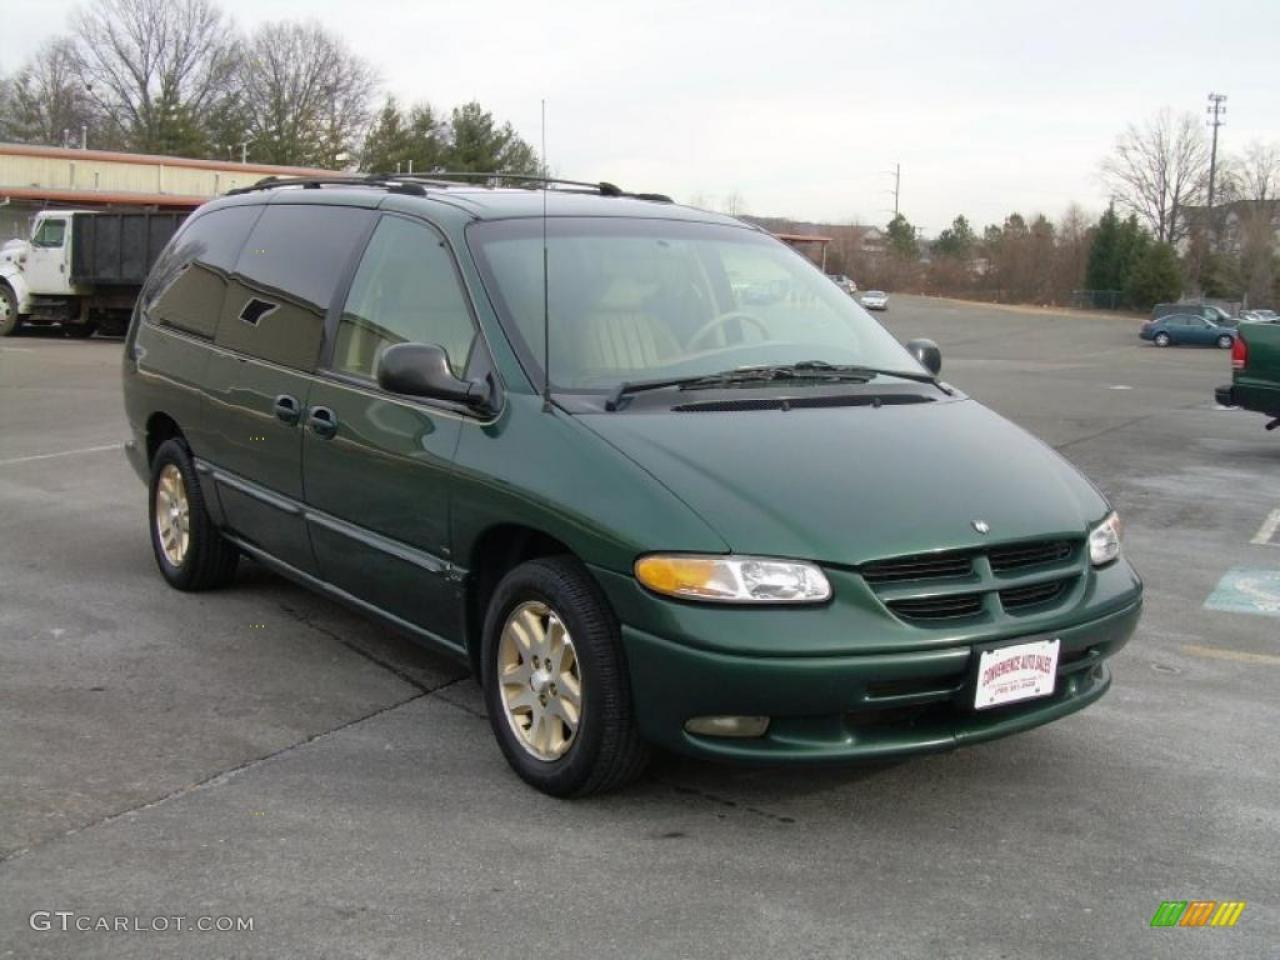 1996 dodge grand caravan information and photos zombiedrive. Black Bedroom Furniture Sets. Home Design Ideas